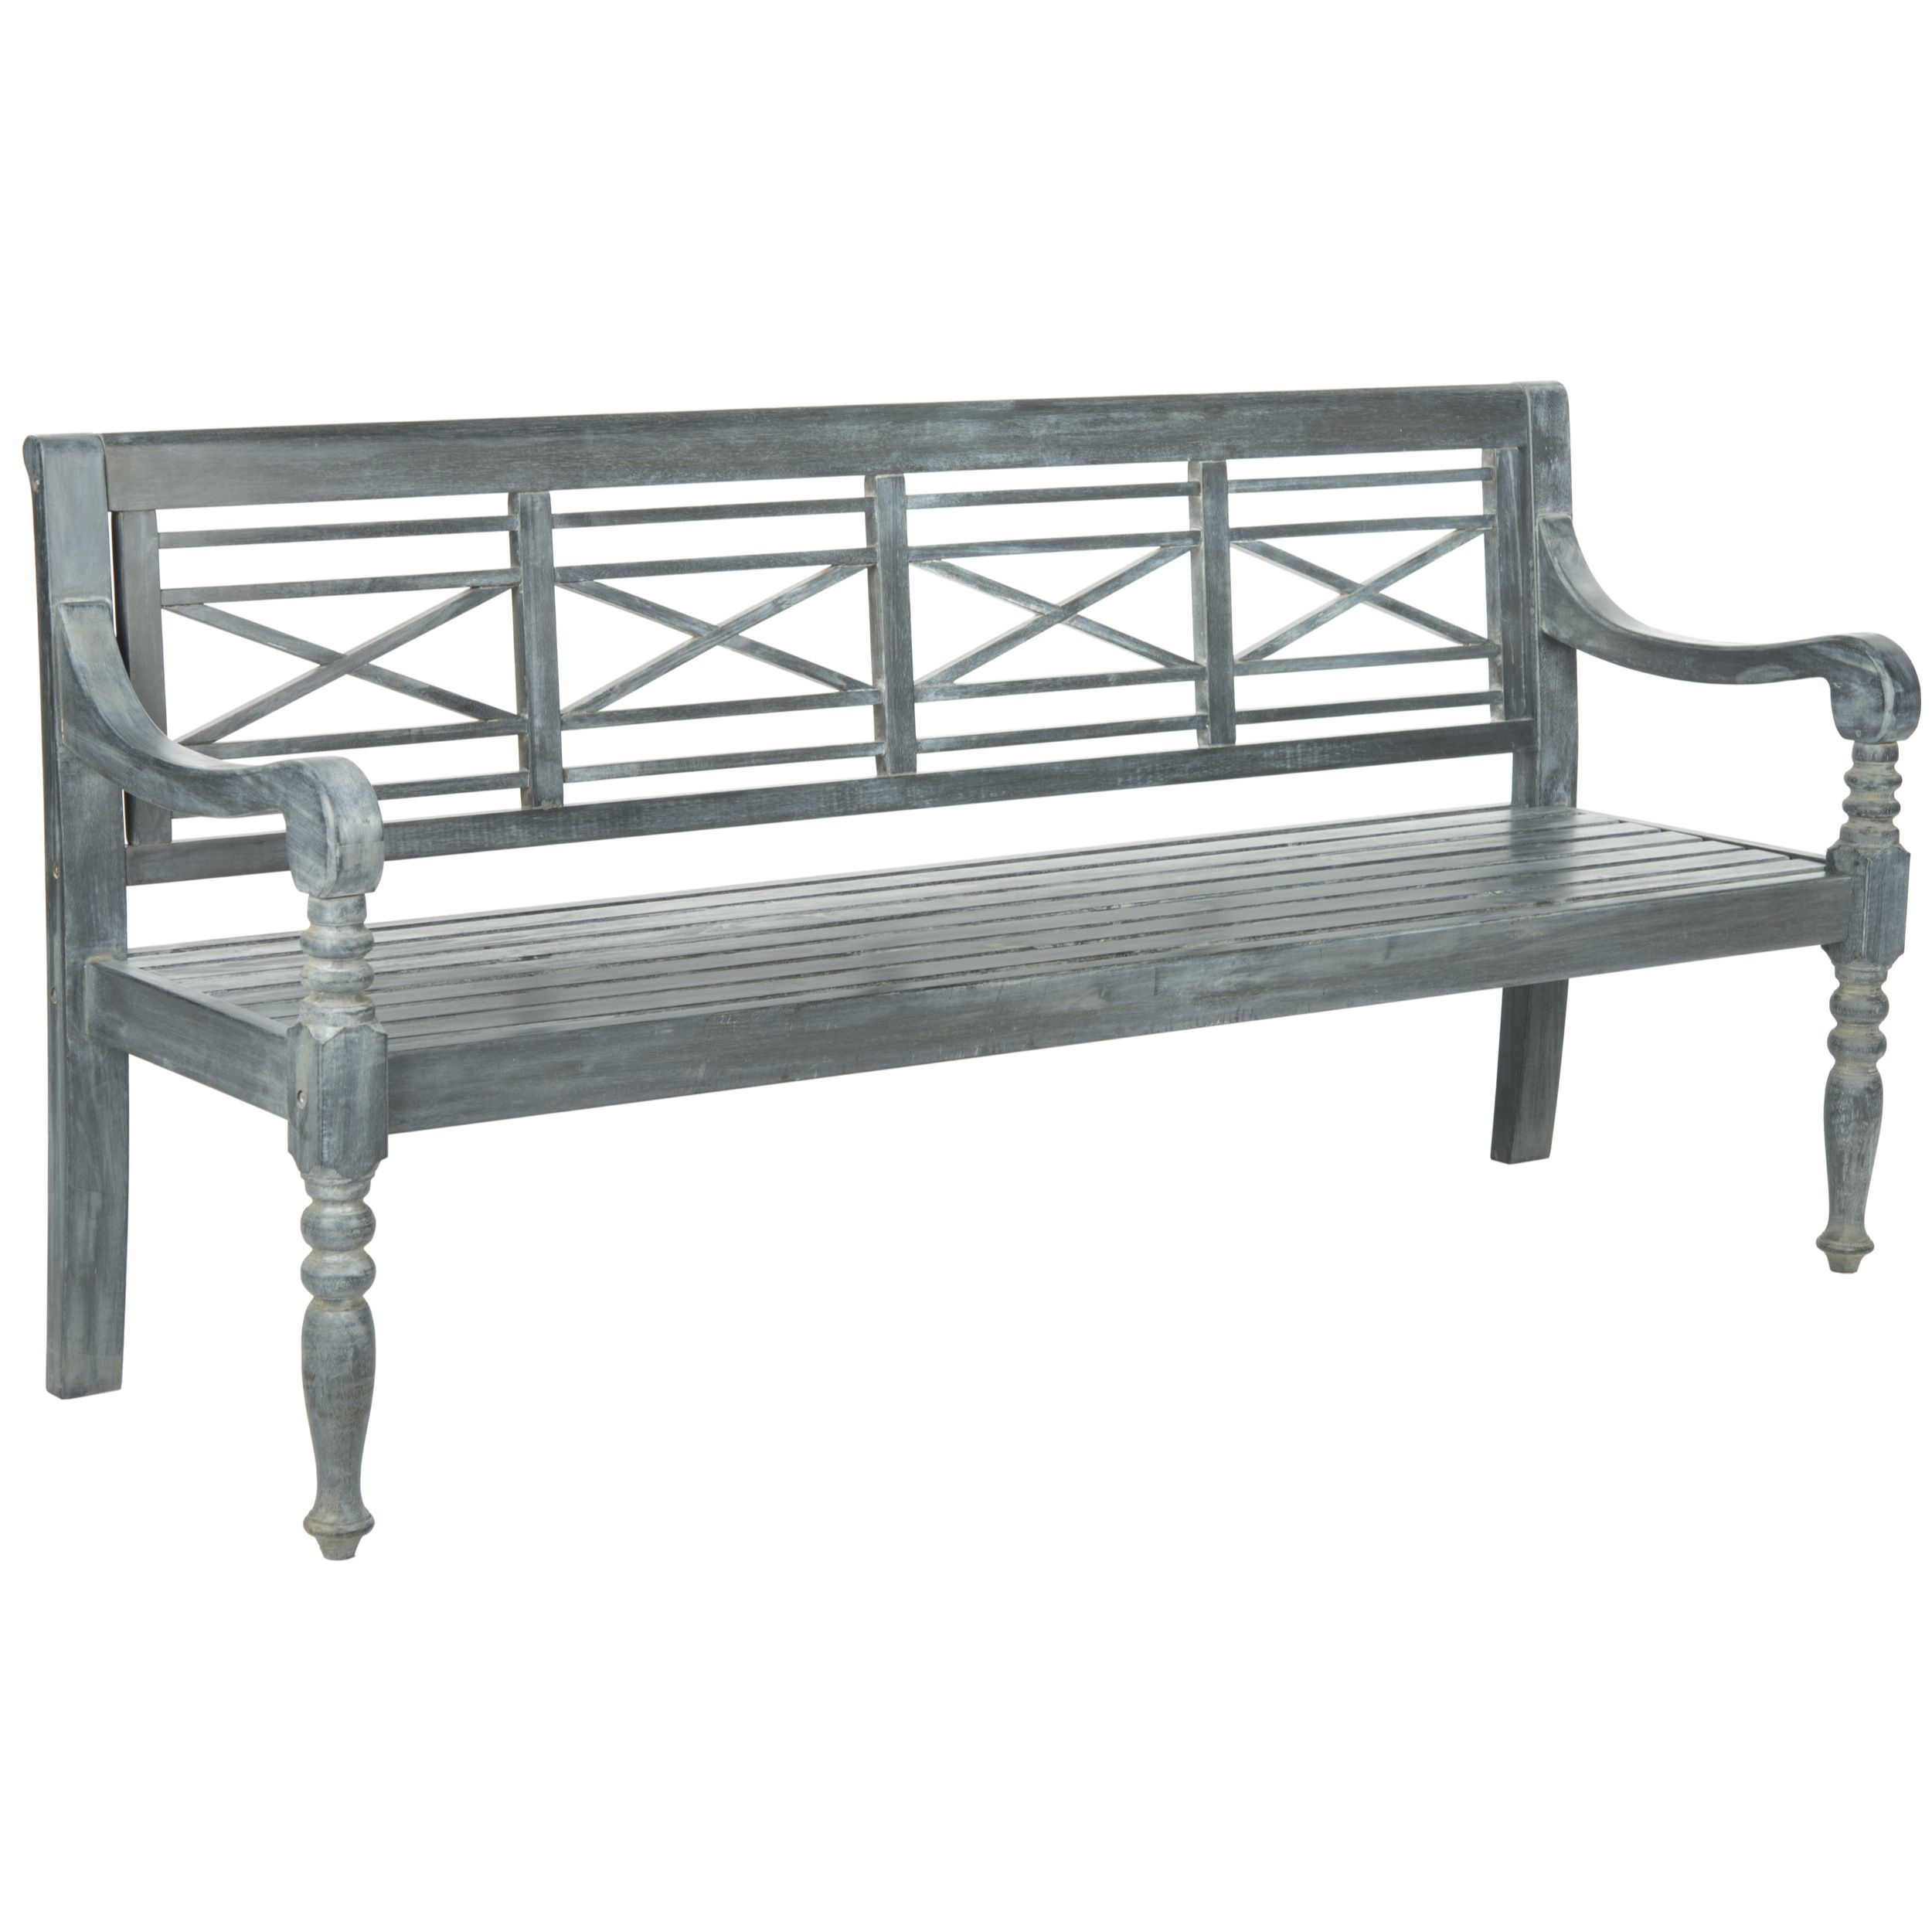 Awesome Safavieh Outdoor Living Karoo Ash Grey Acacia Wood Bench (PAT6704A), Patio  Furniture